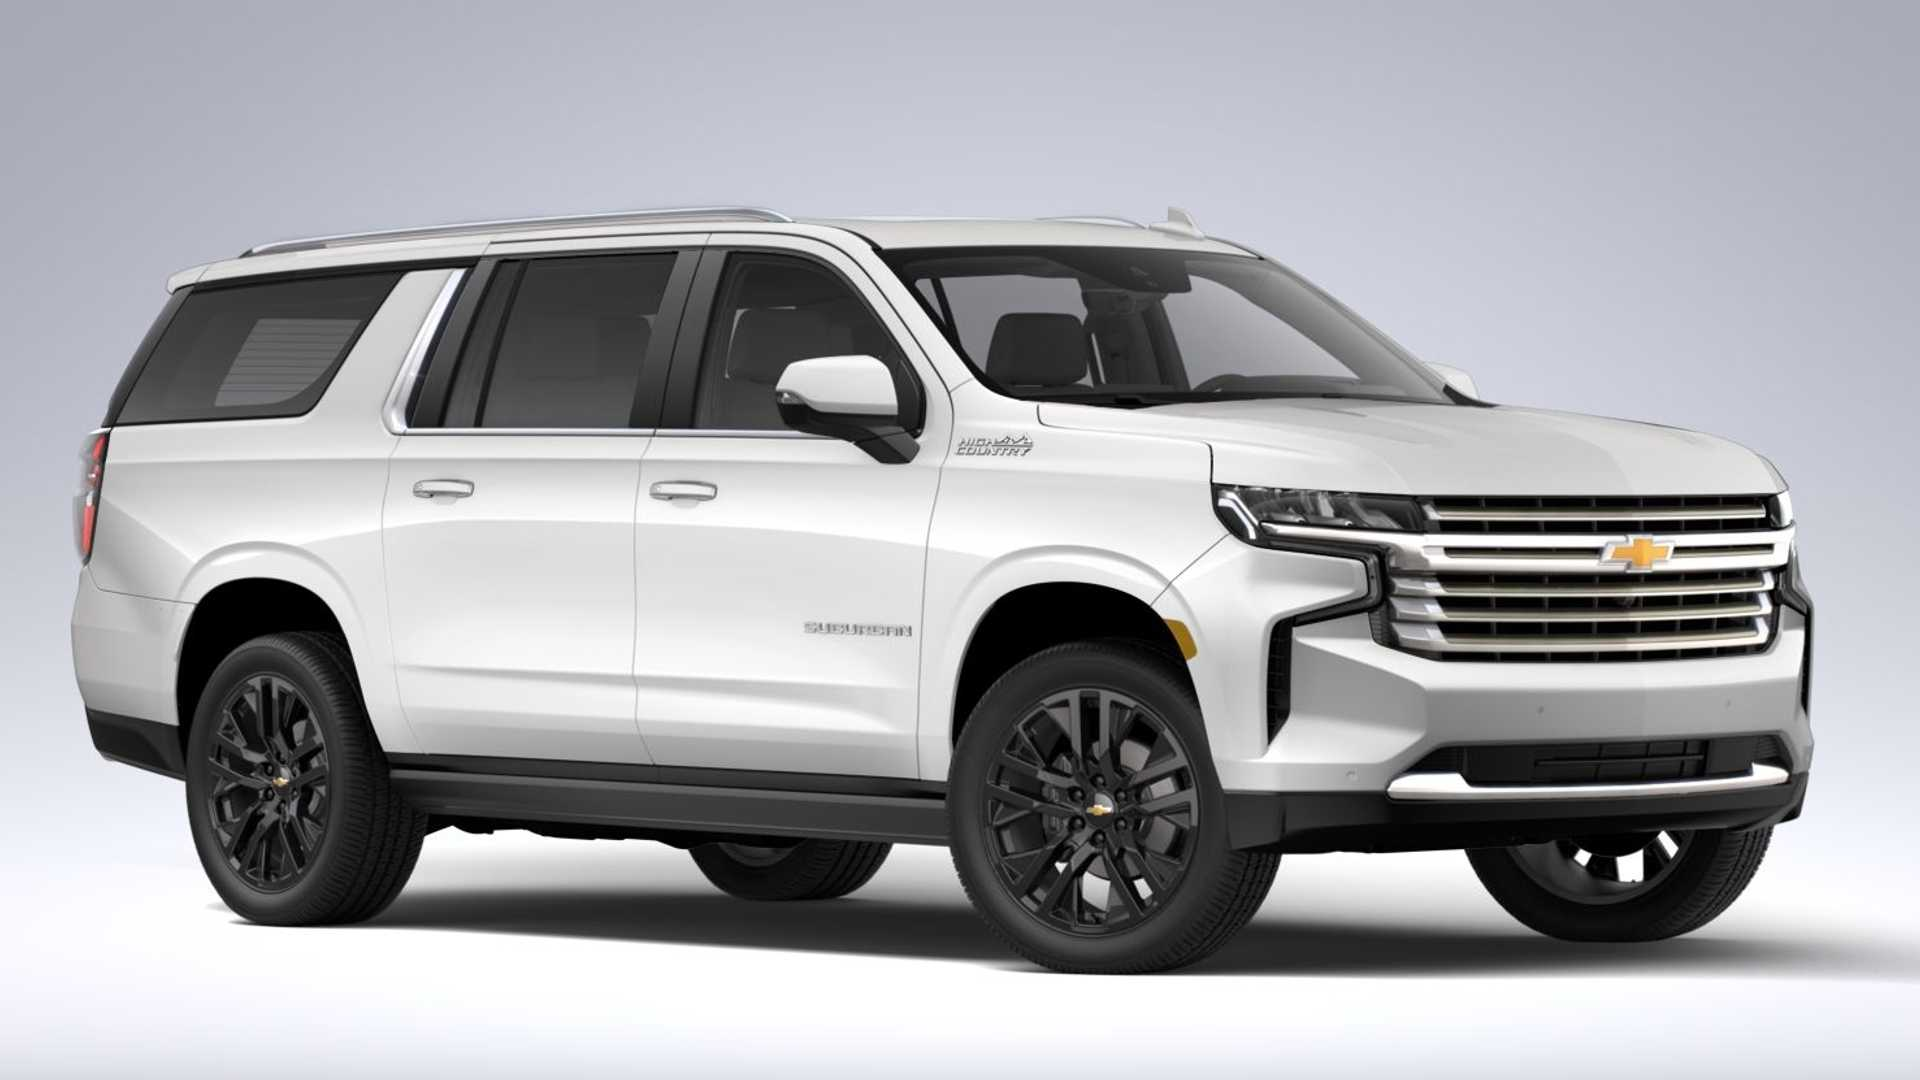 most expensive 2021 chevy suburban costs 86465